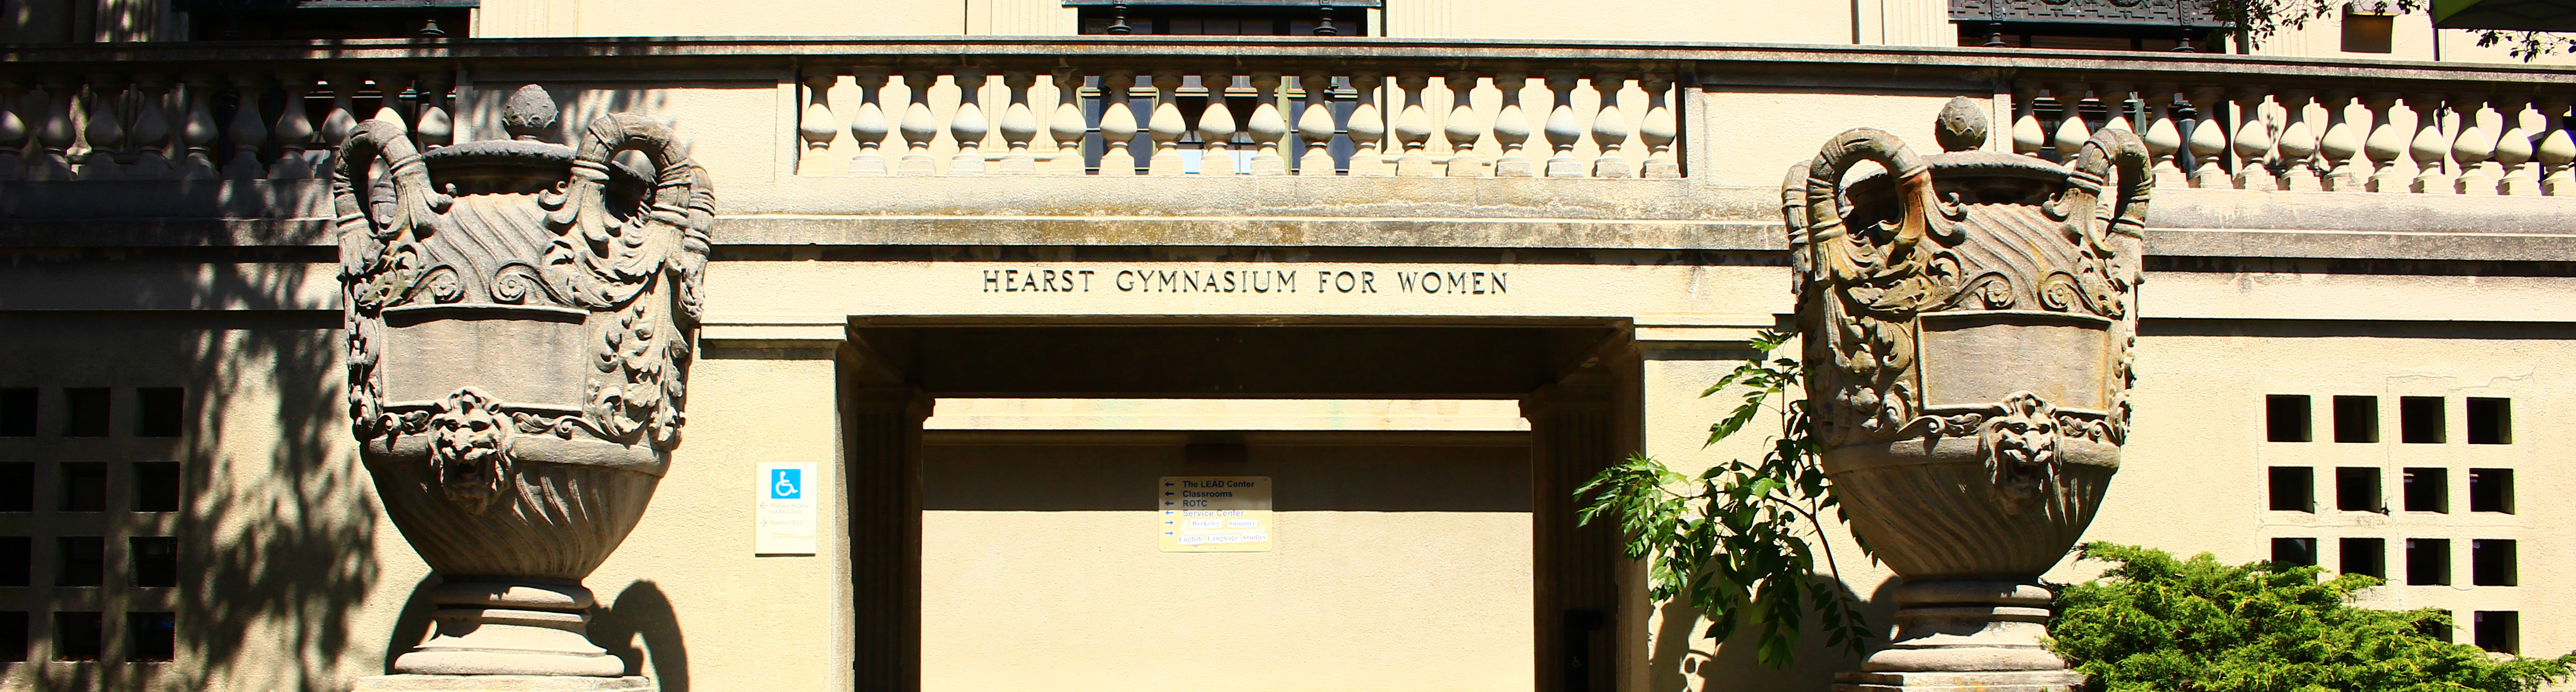 West entrance of Hearst Gymnasium